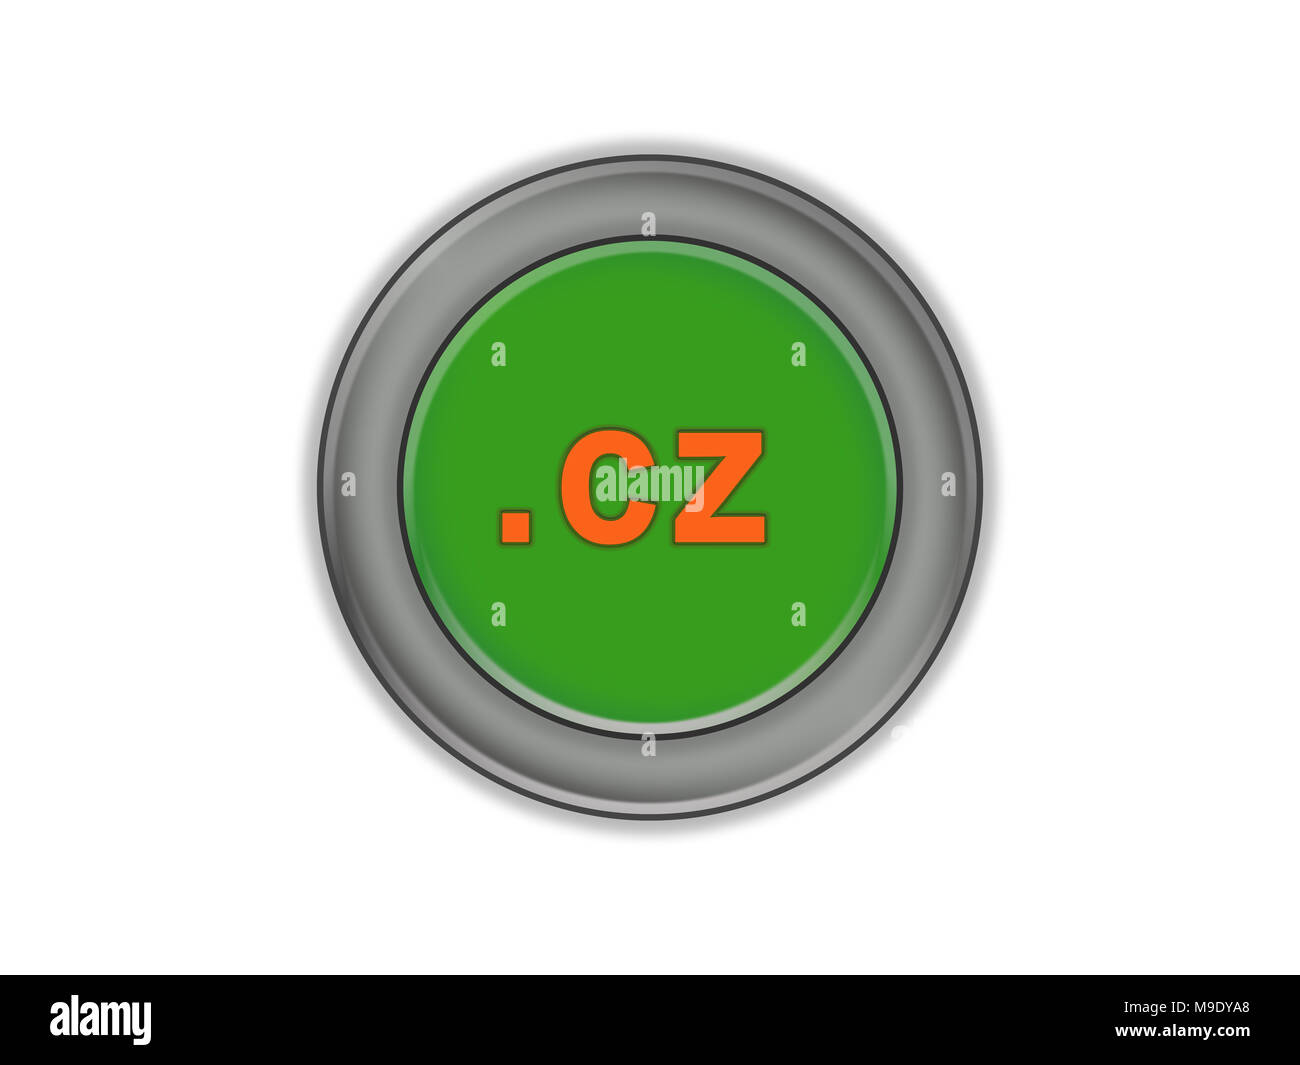 Bulk green button with the designation of a country domain, the Czech Republic, white background - Stock Image